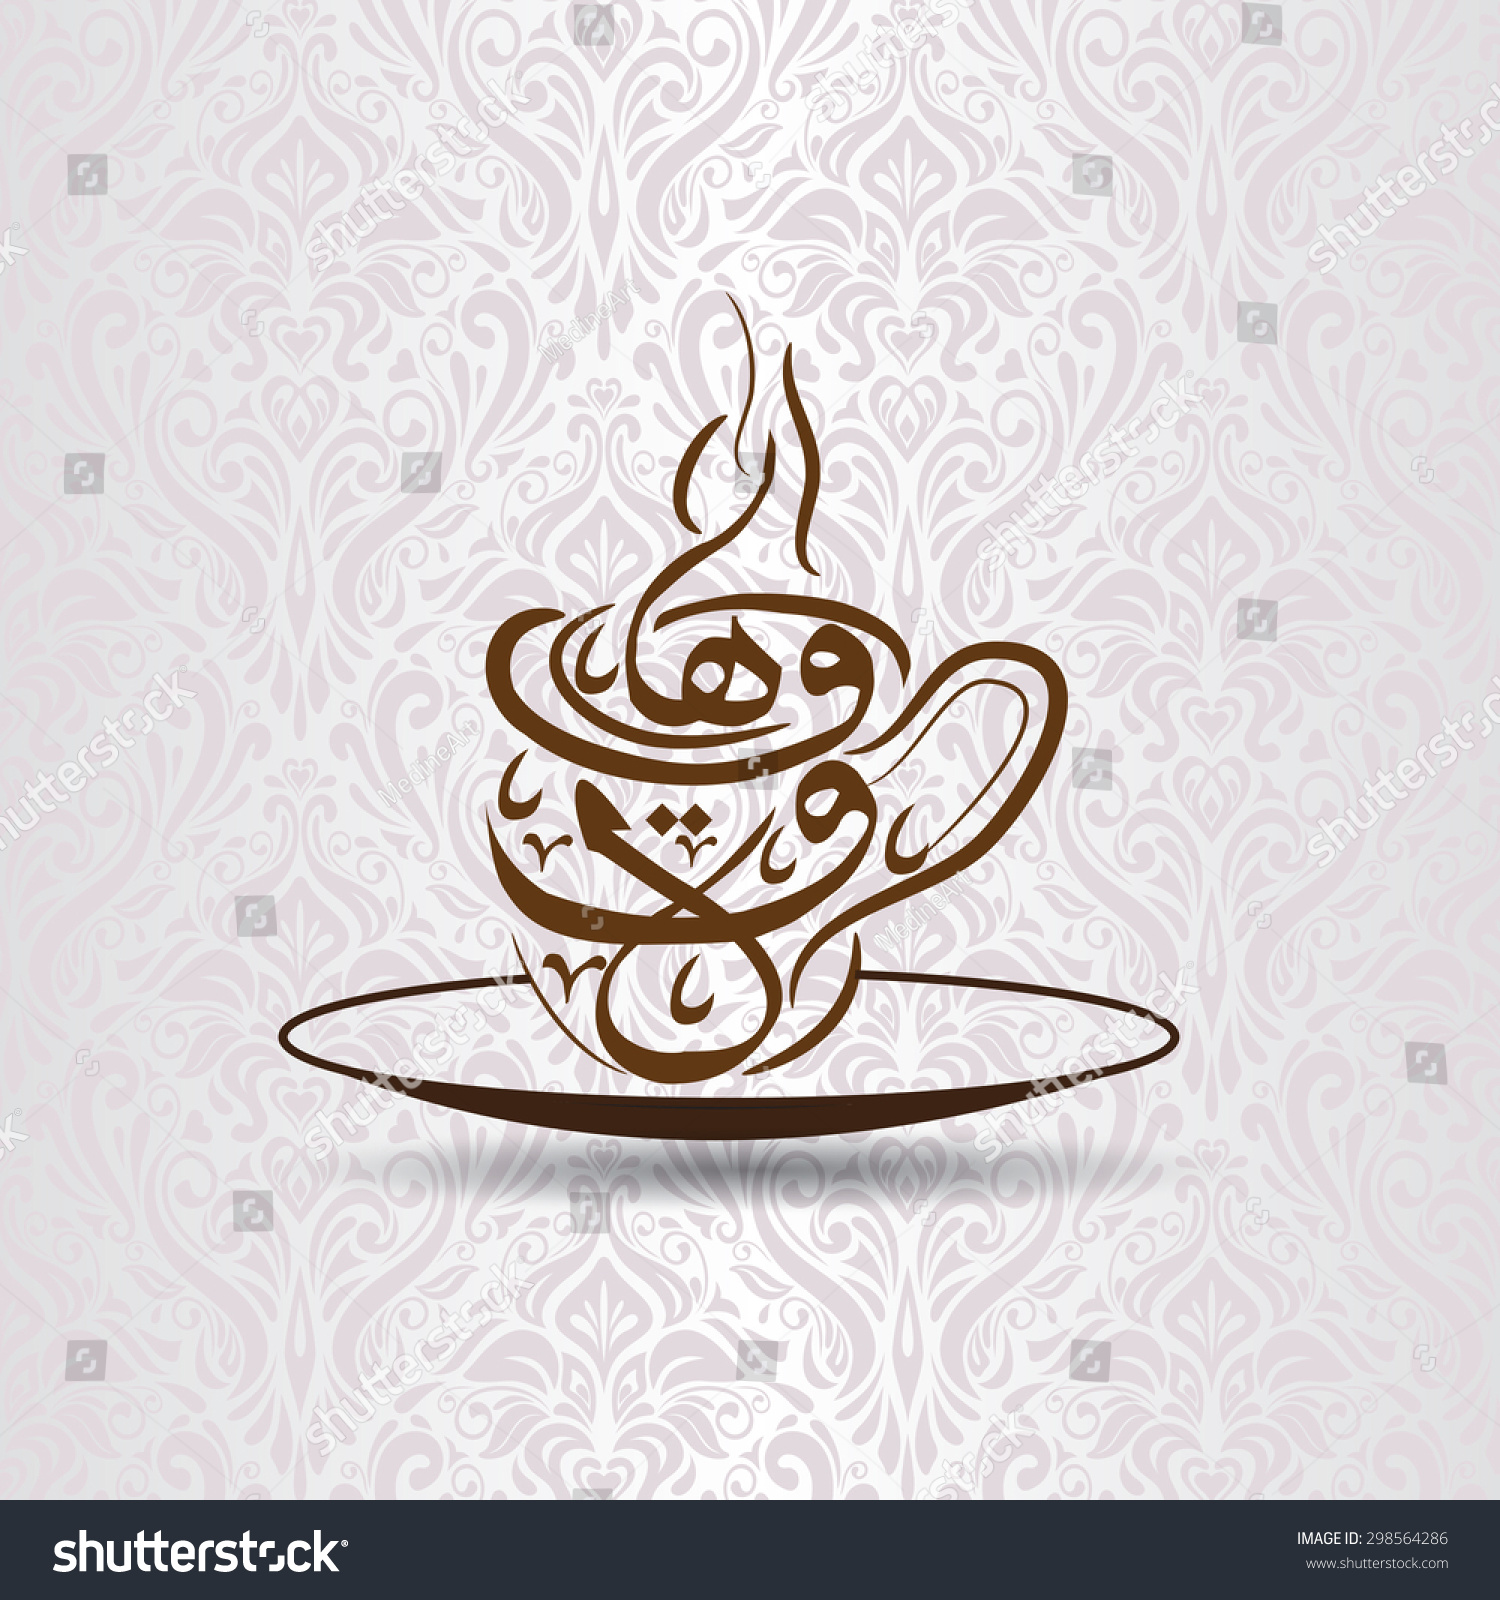 Coffee logo arab background arabic calligraphy stock